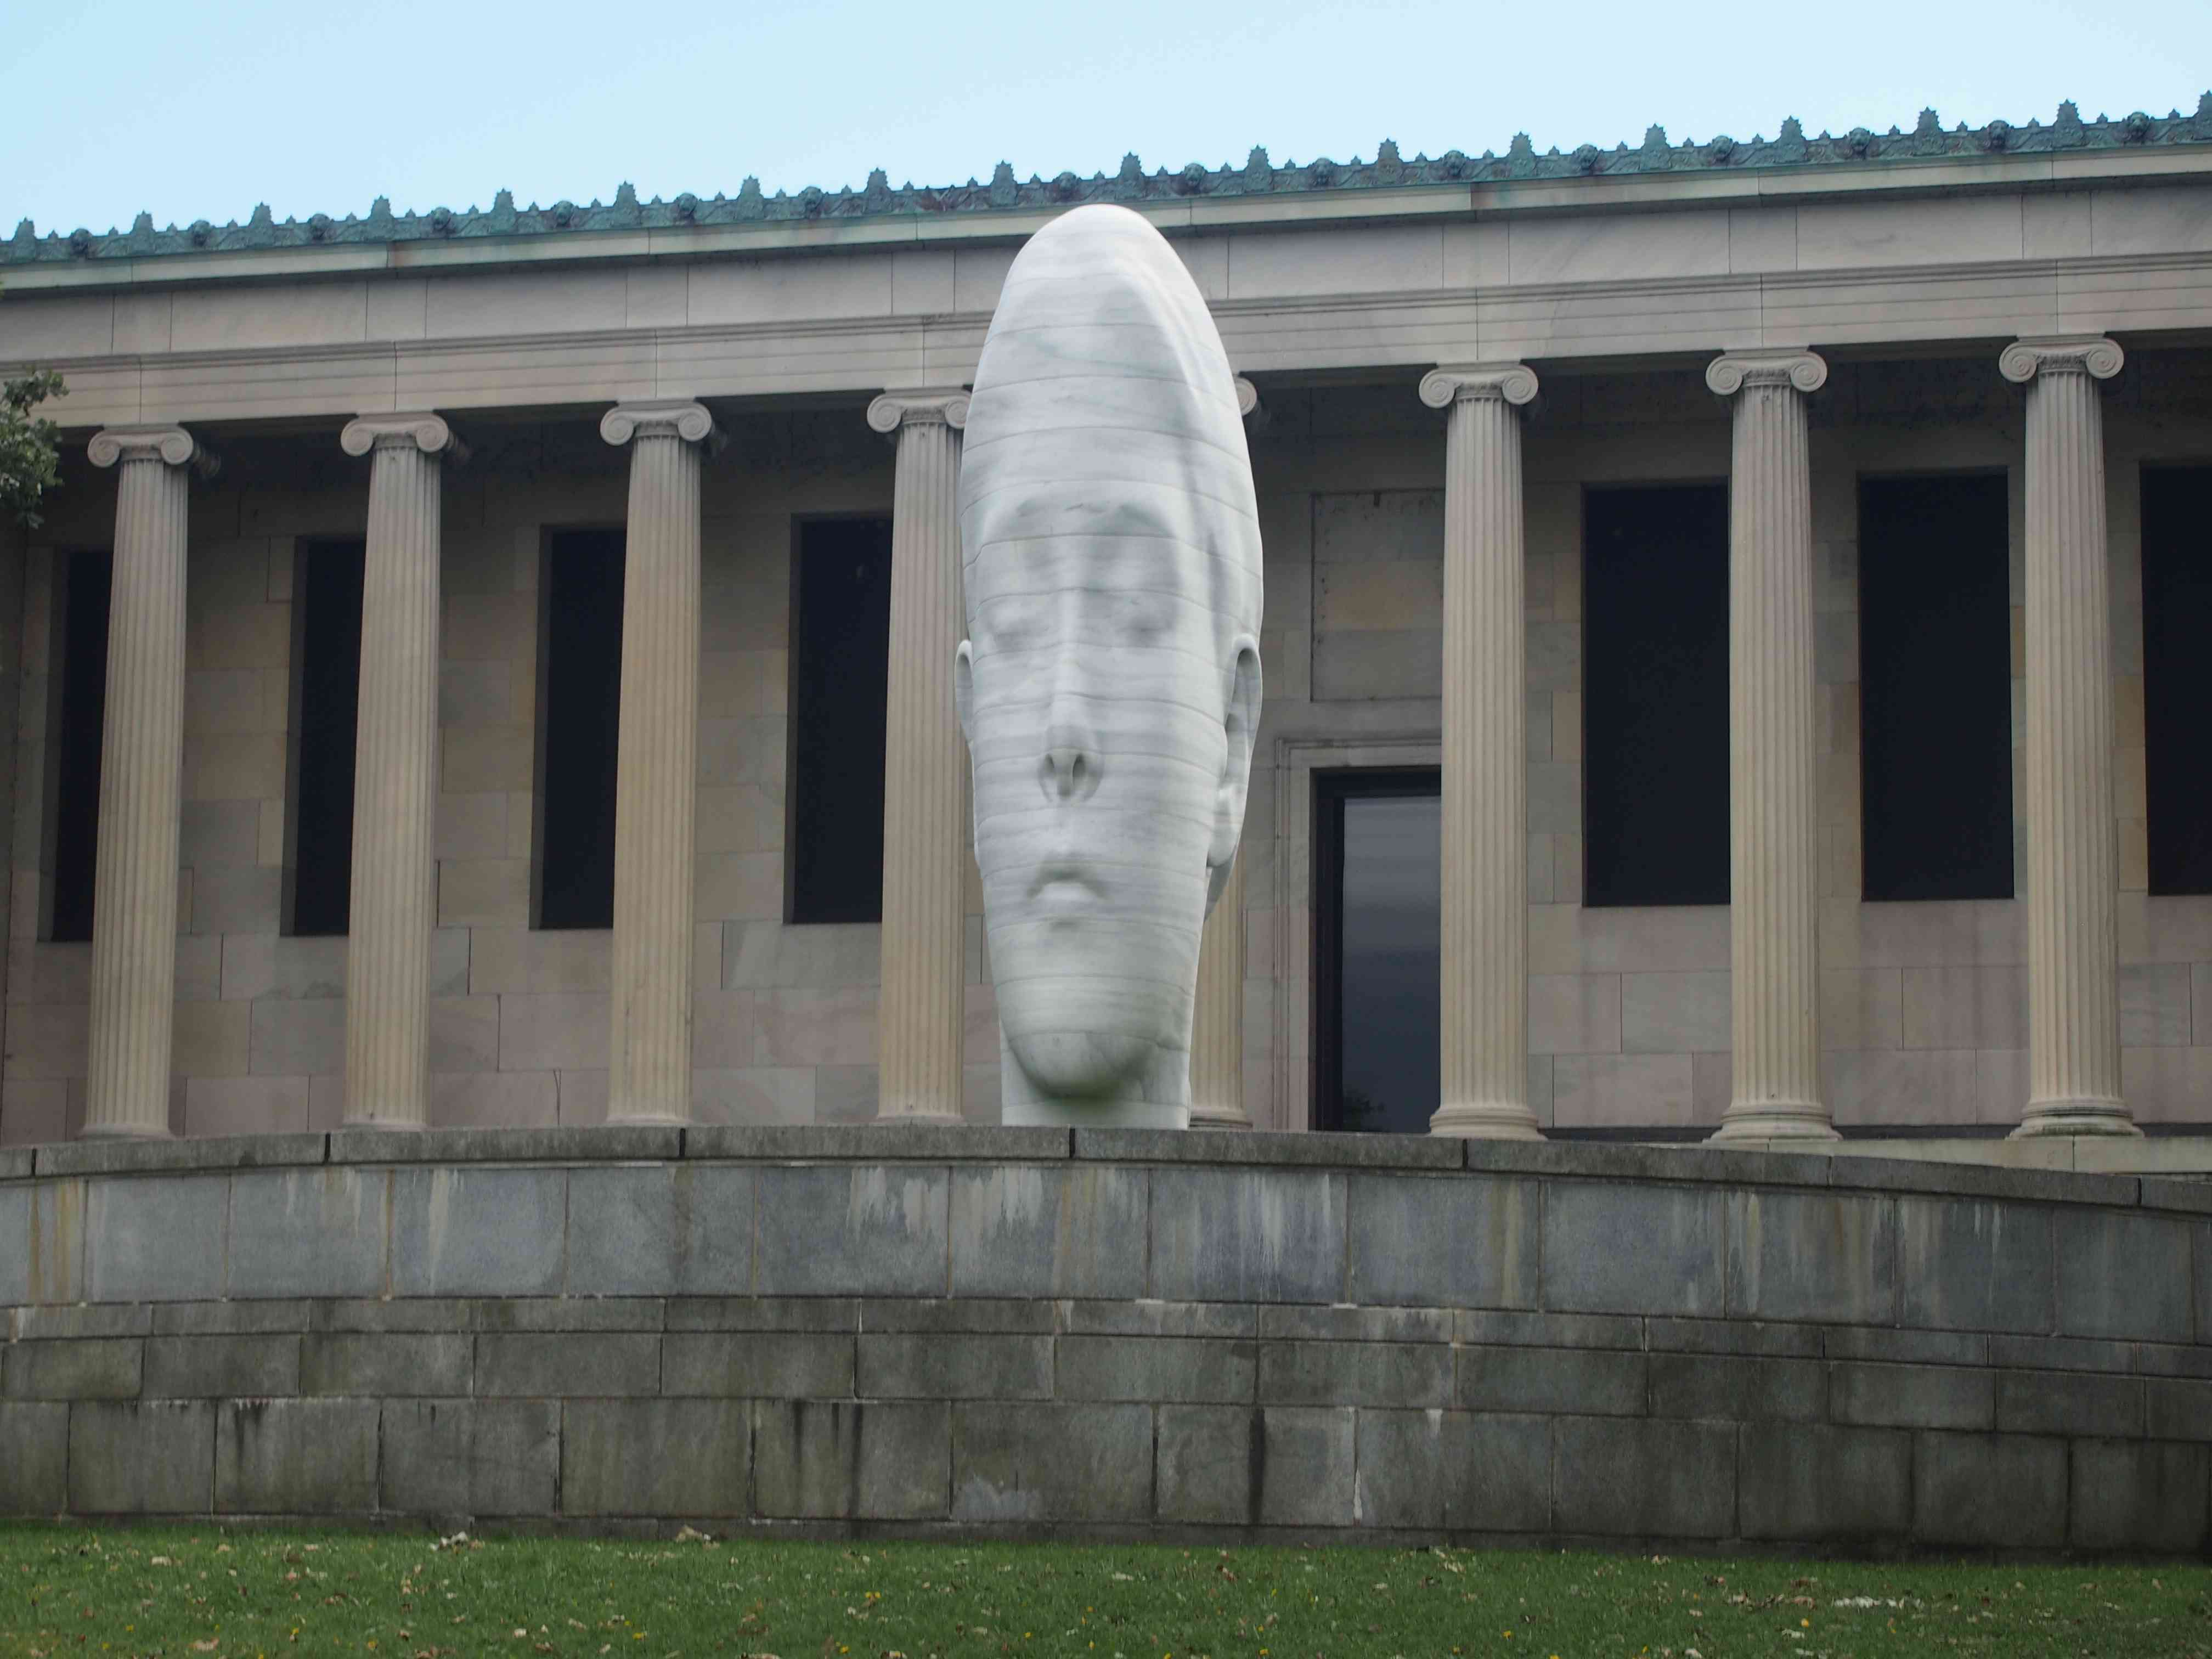 building with a row of classical columns with a white head sculpture in foreground